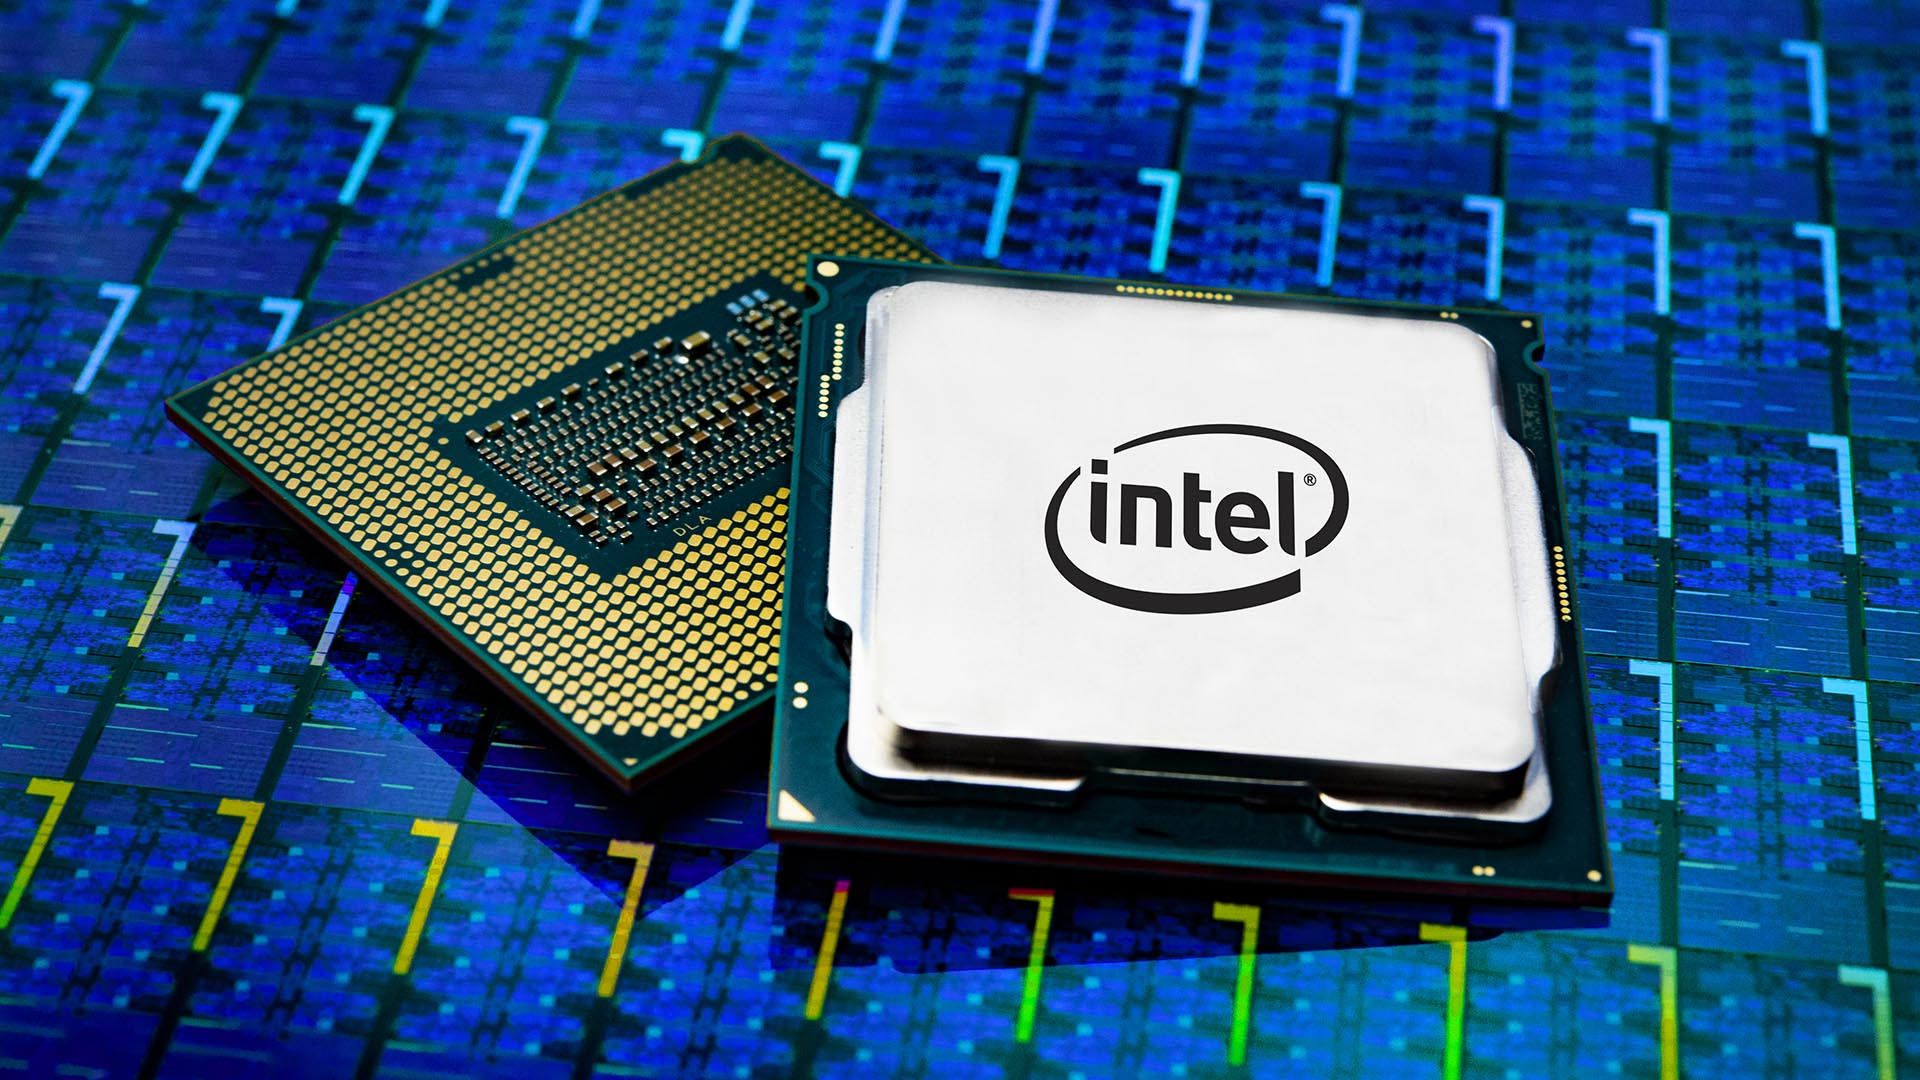 A photo released Oct. 8, 2018, shows a 9th Gen Intel Core processor packages. The processor family is optimized for gaming. (Source: Intel Corporation)